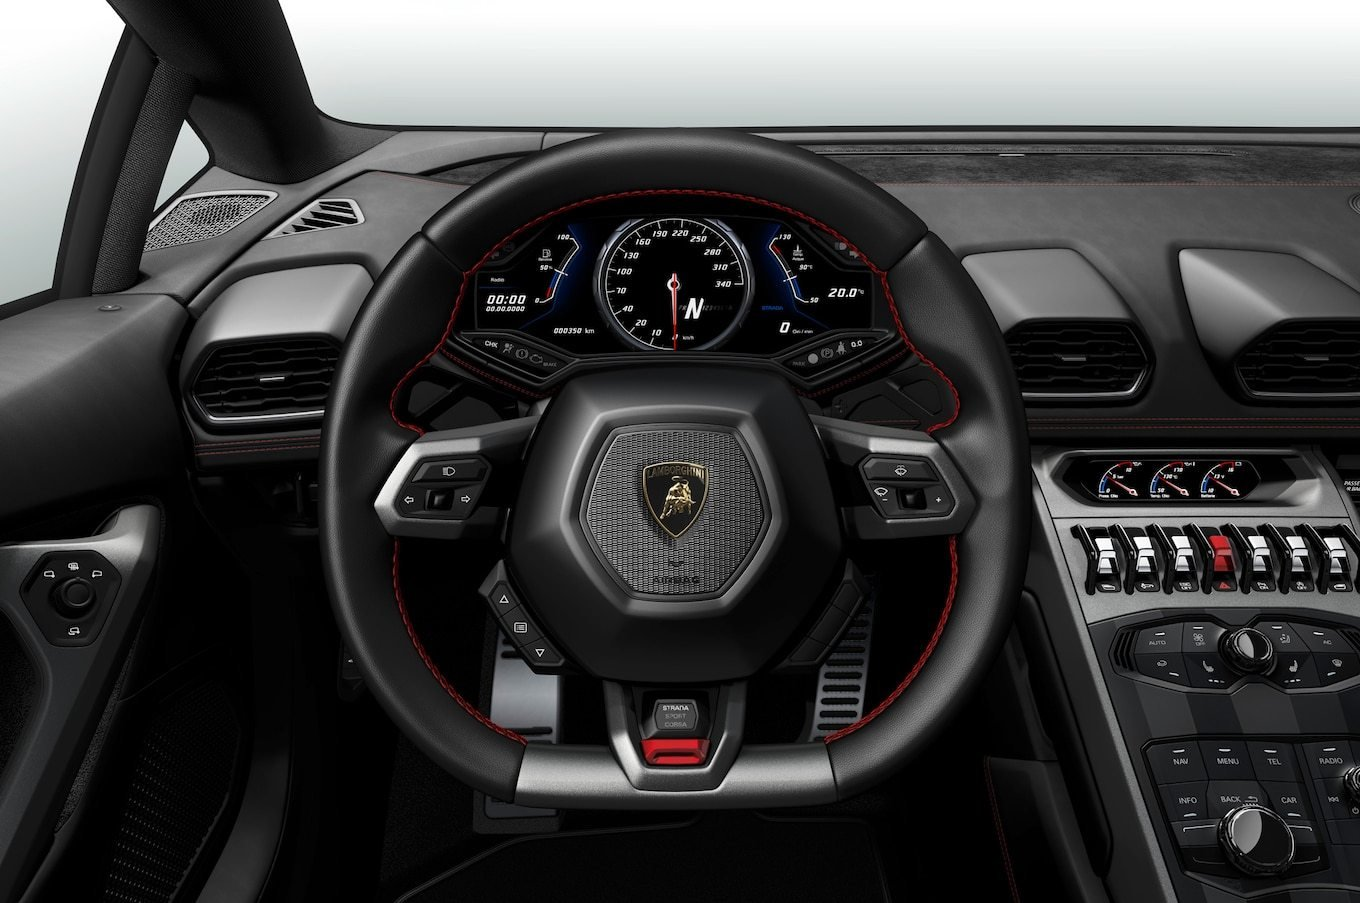 New The Lamborghini Huracan 18 Things You Didn't Know Motor On This Month